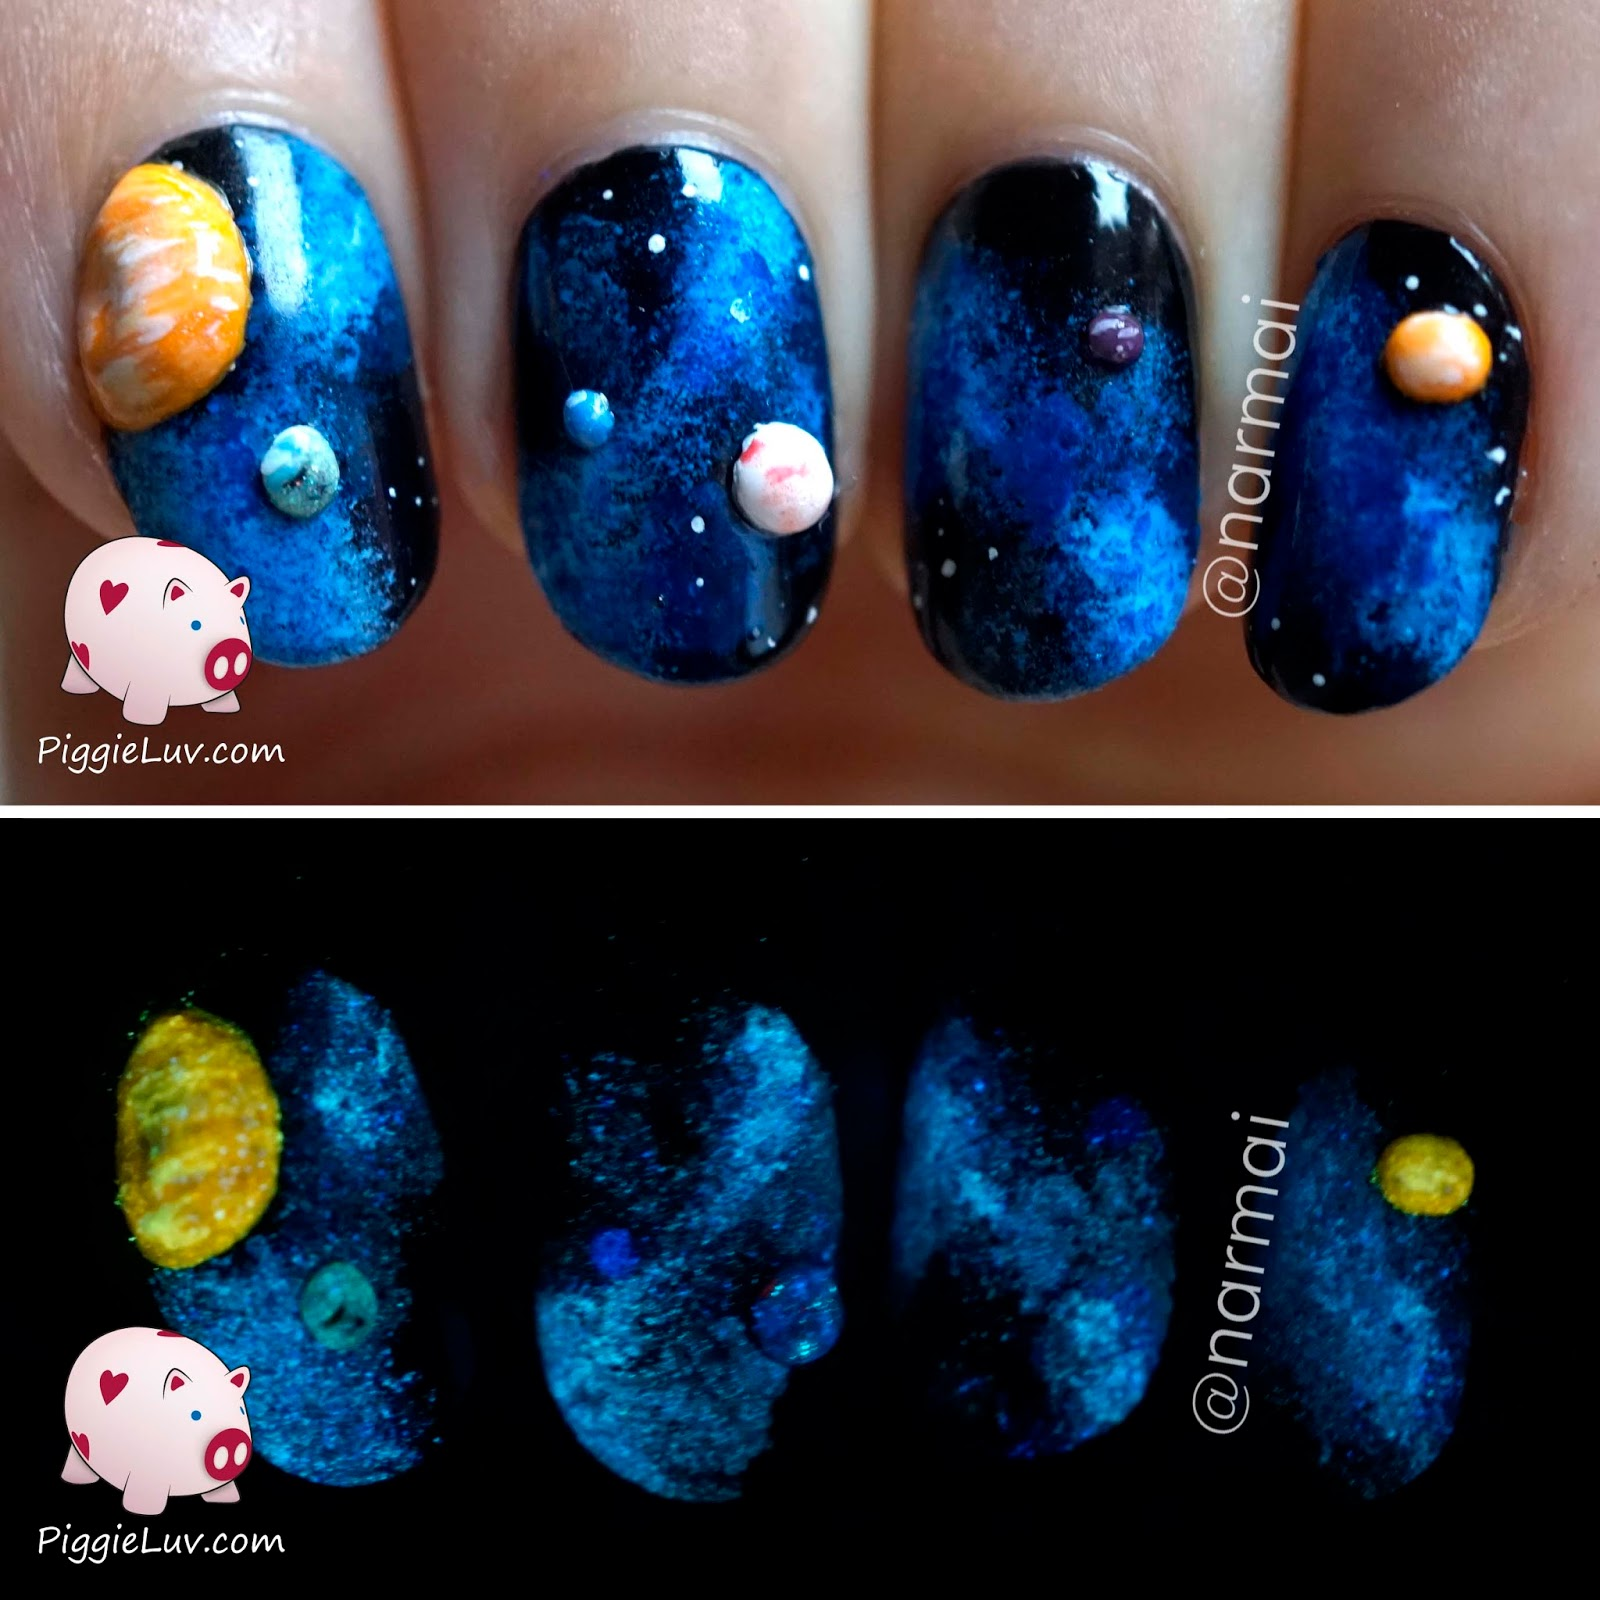 PiggieLuv: 3D galaxy nail art (glow in the dark)